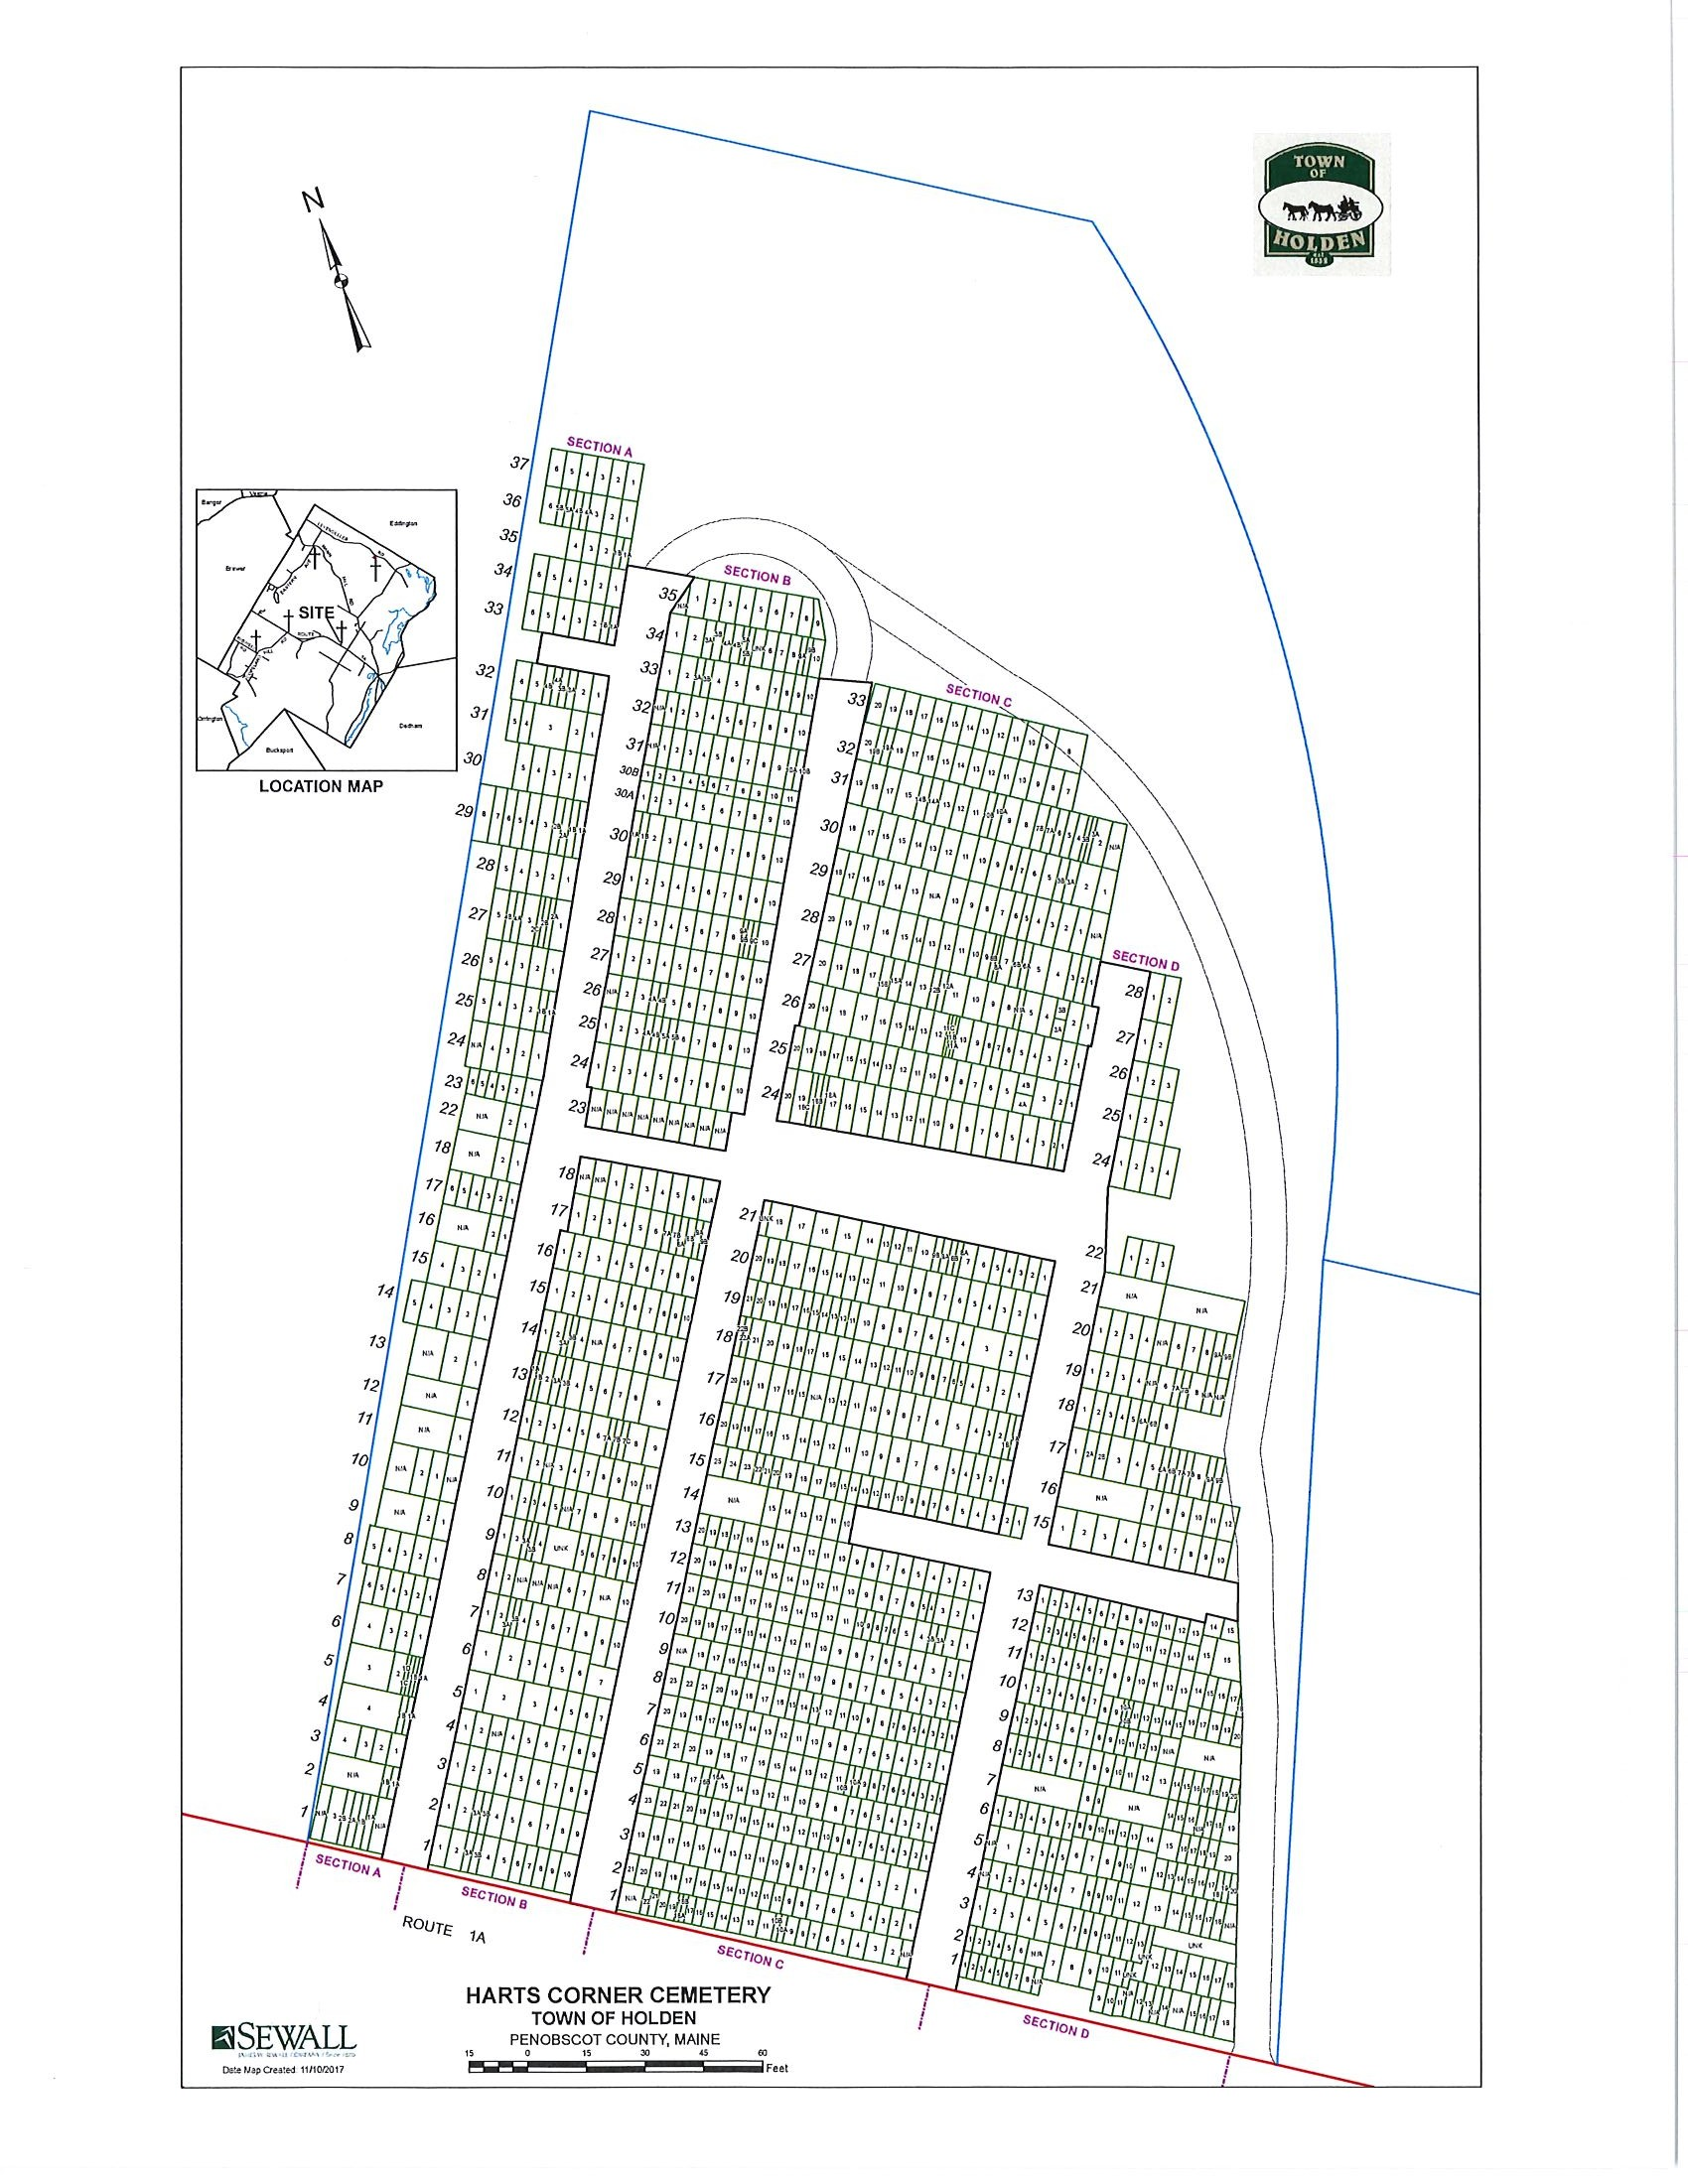 Cemetery Maps - Town of Holden, ME on